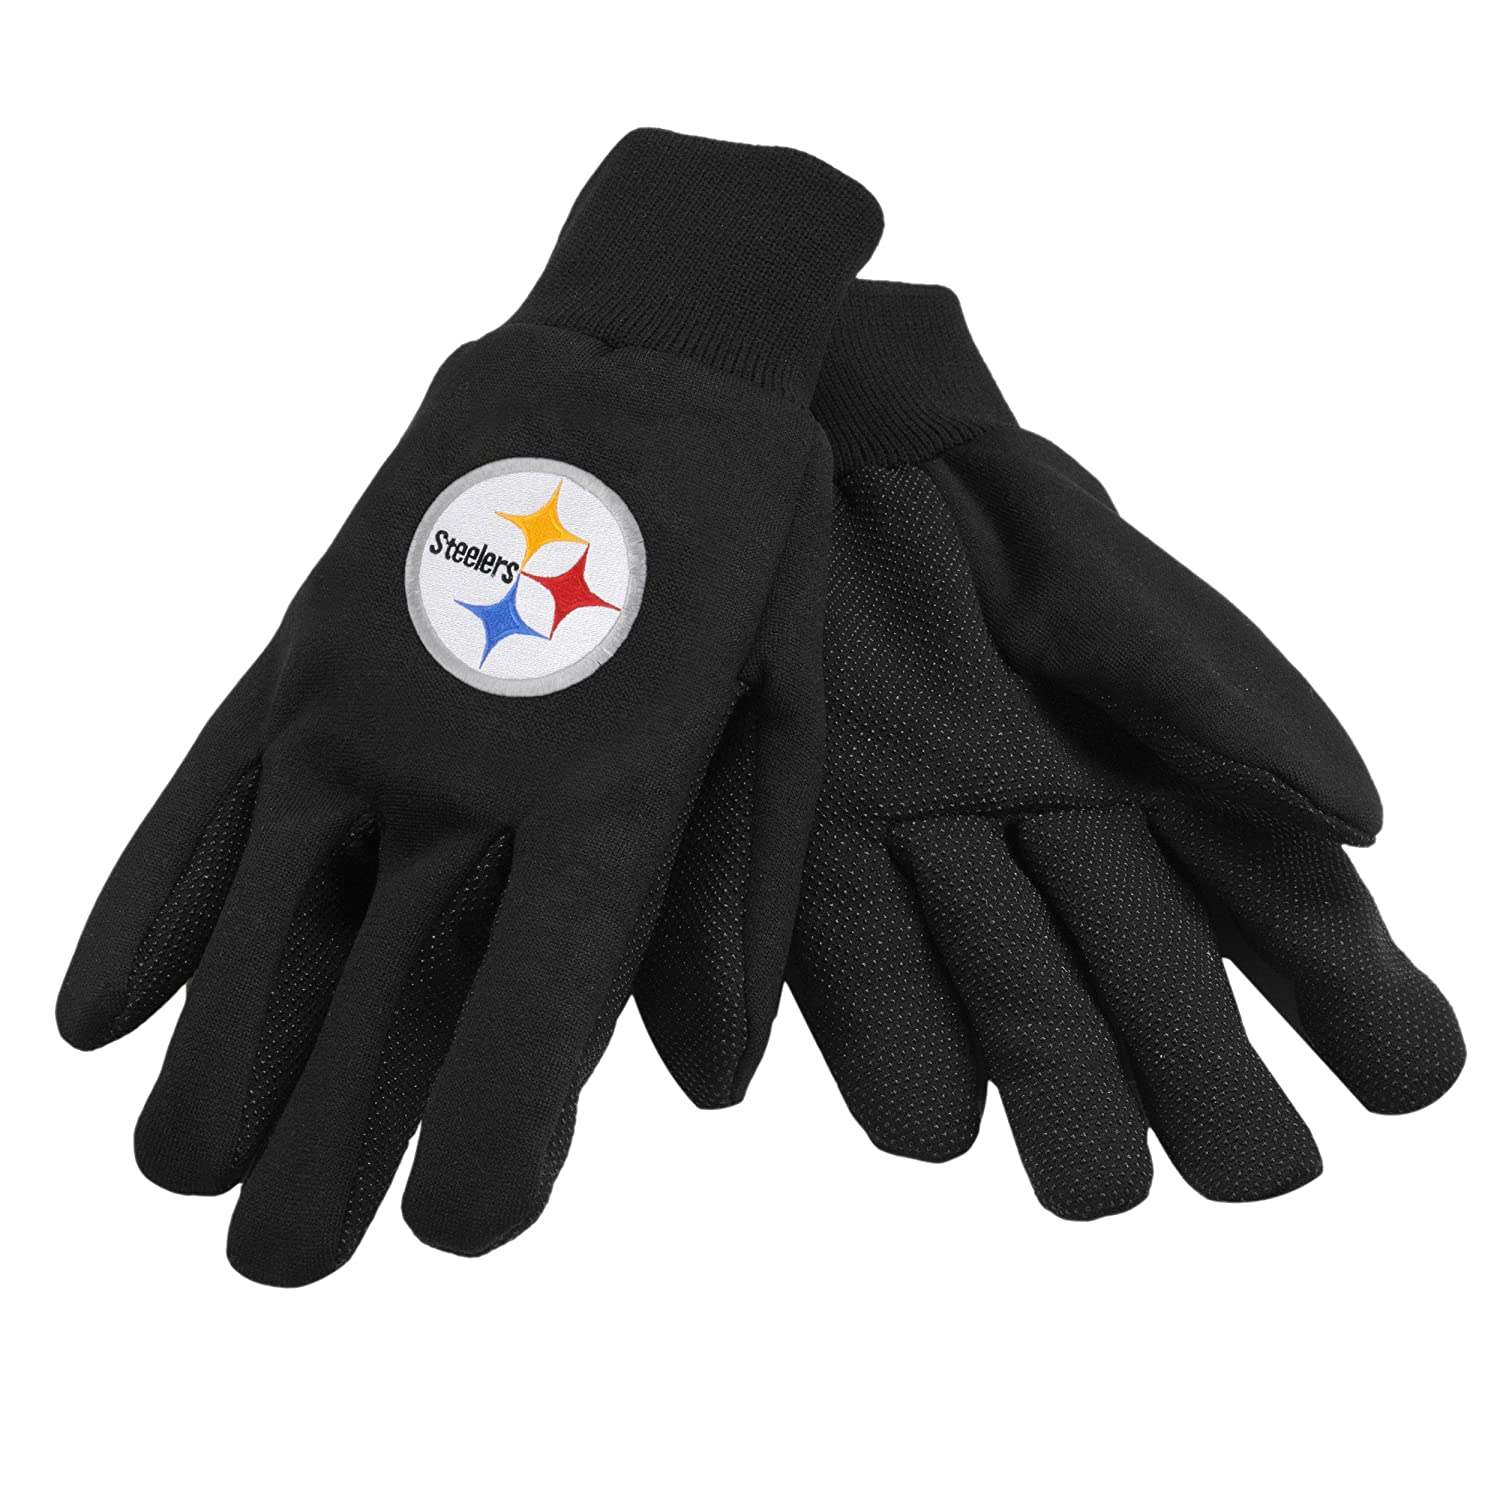 Pittsburgh Steelers Work Gloves caseys GLVWKNF11PS bestes ...